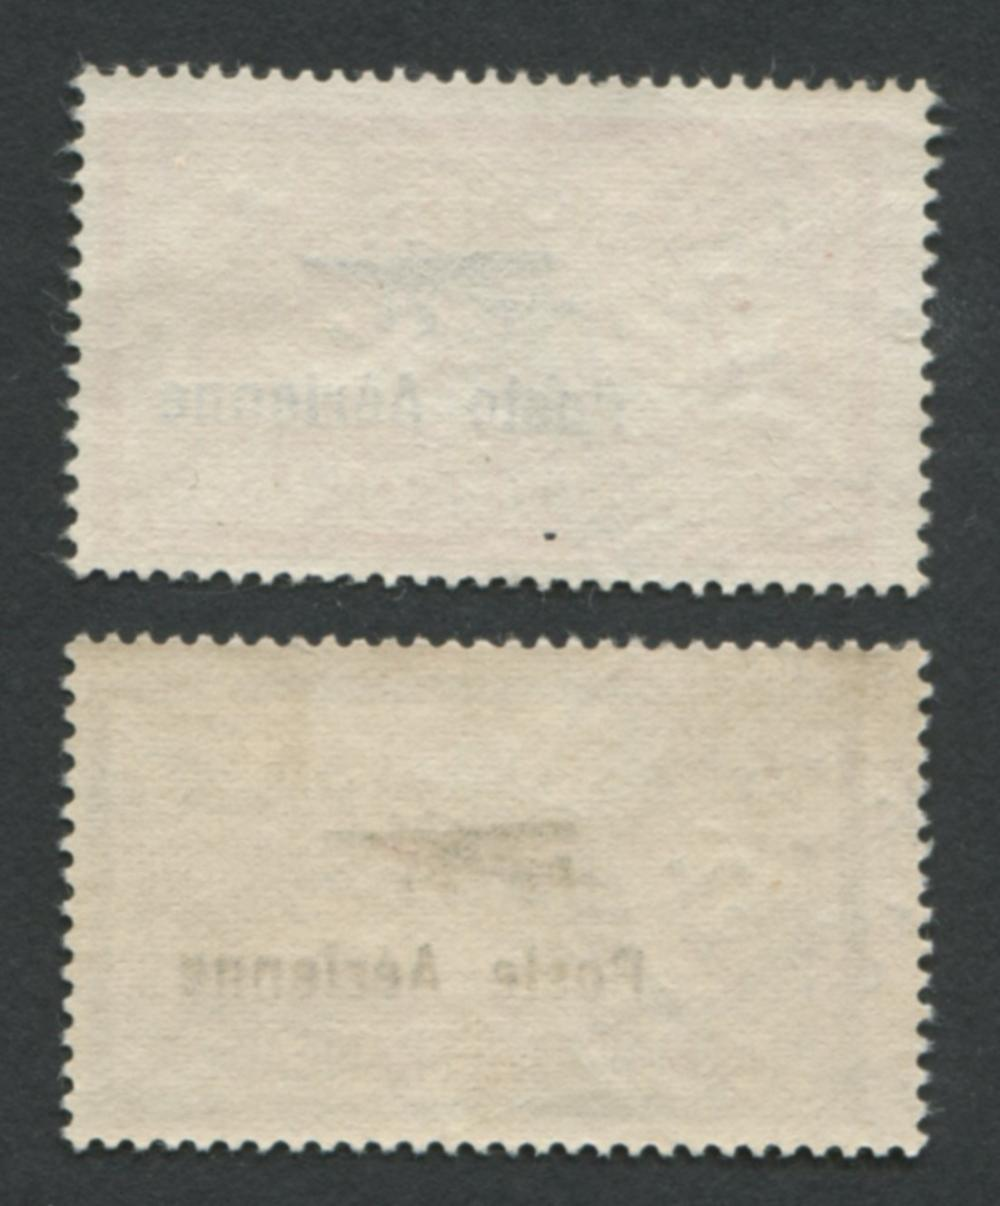 France 1927 #C1 A18 2Fr and #C2 A18 5Fr Overprinted in Black VF